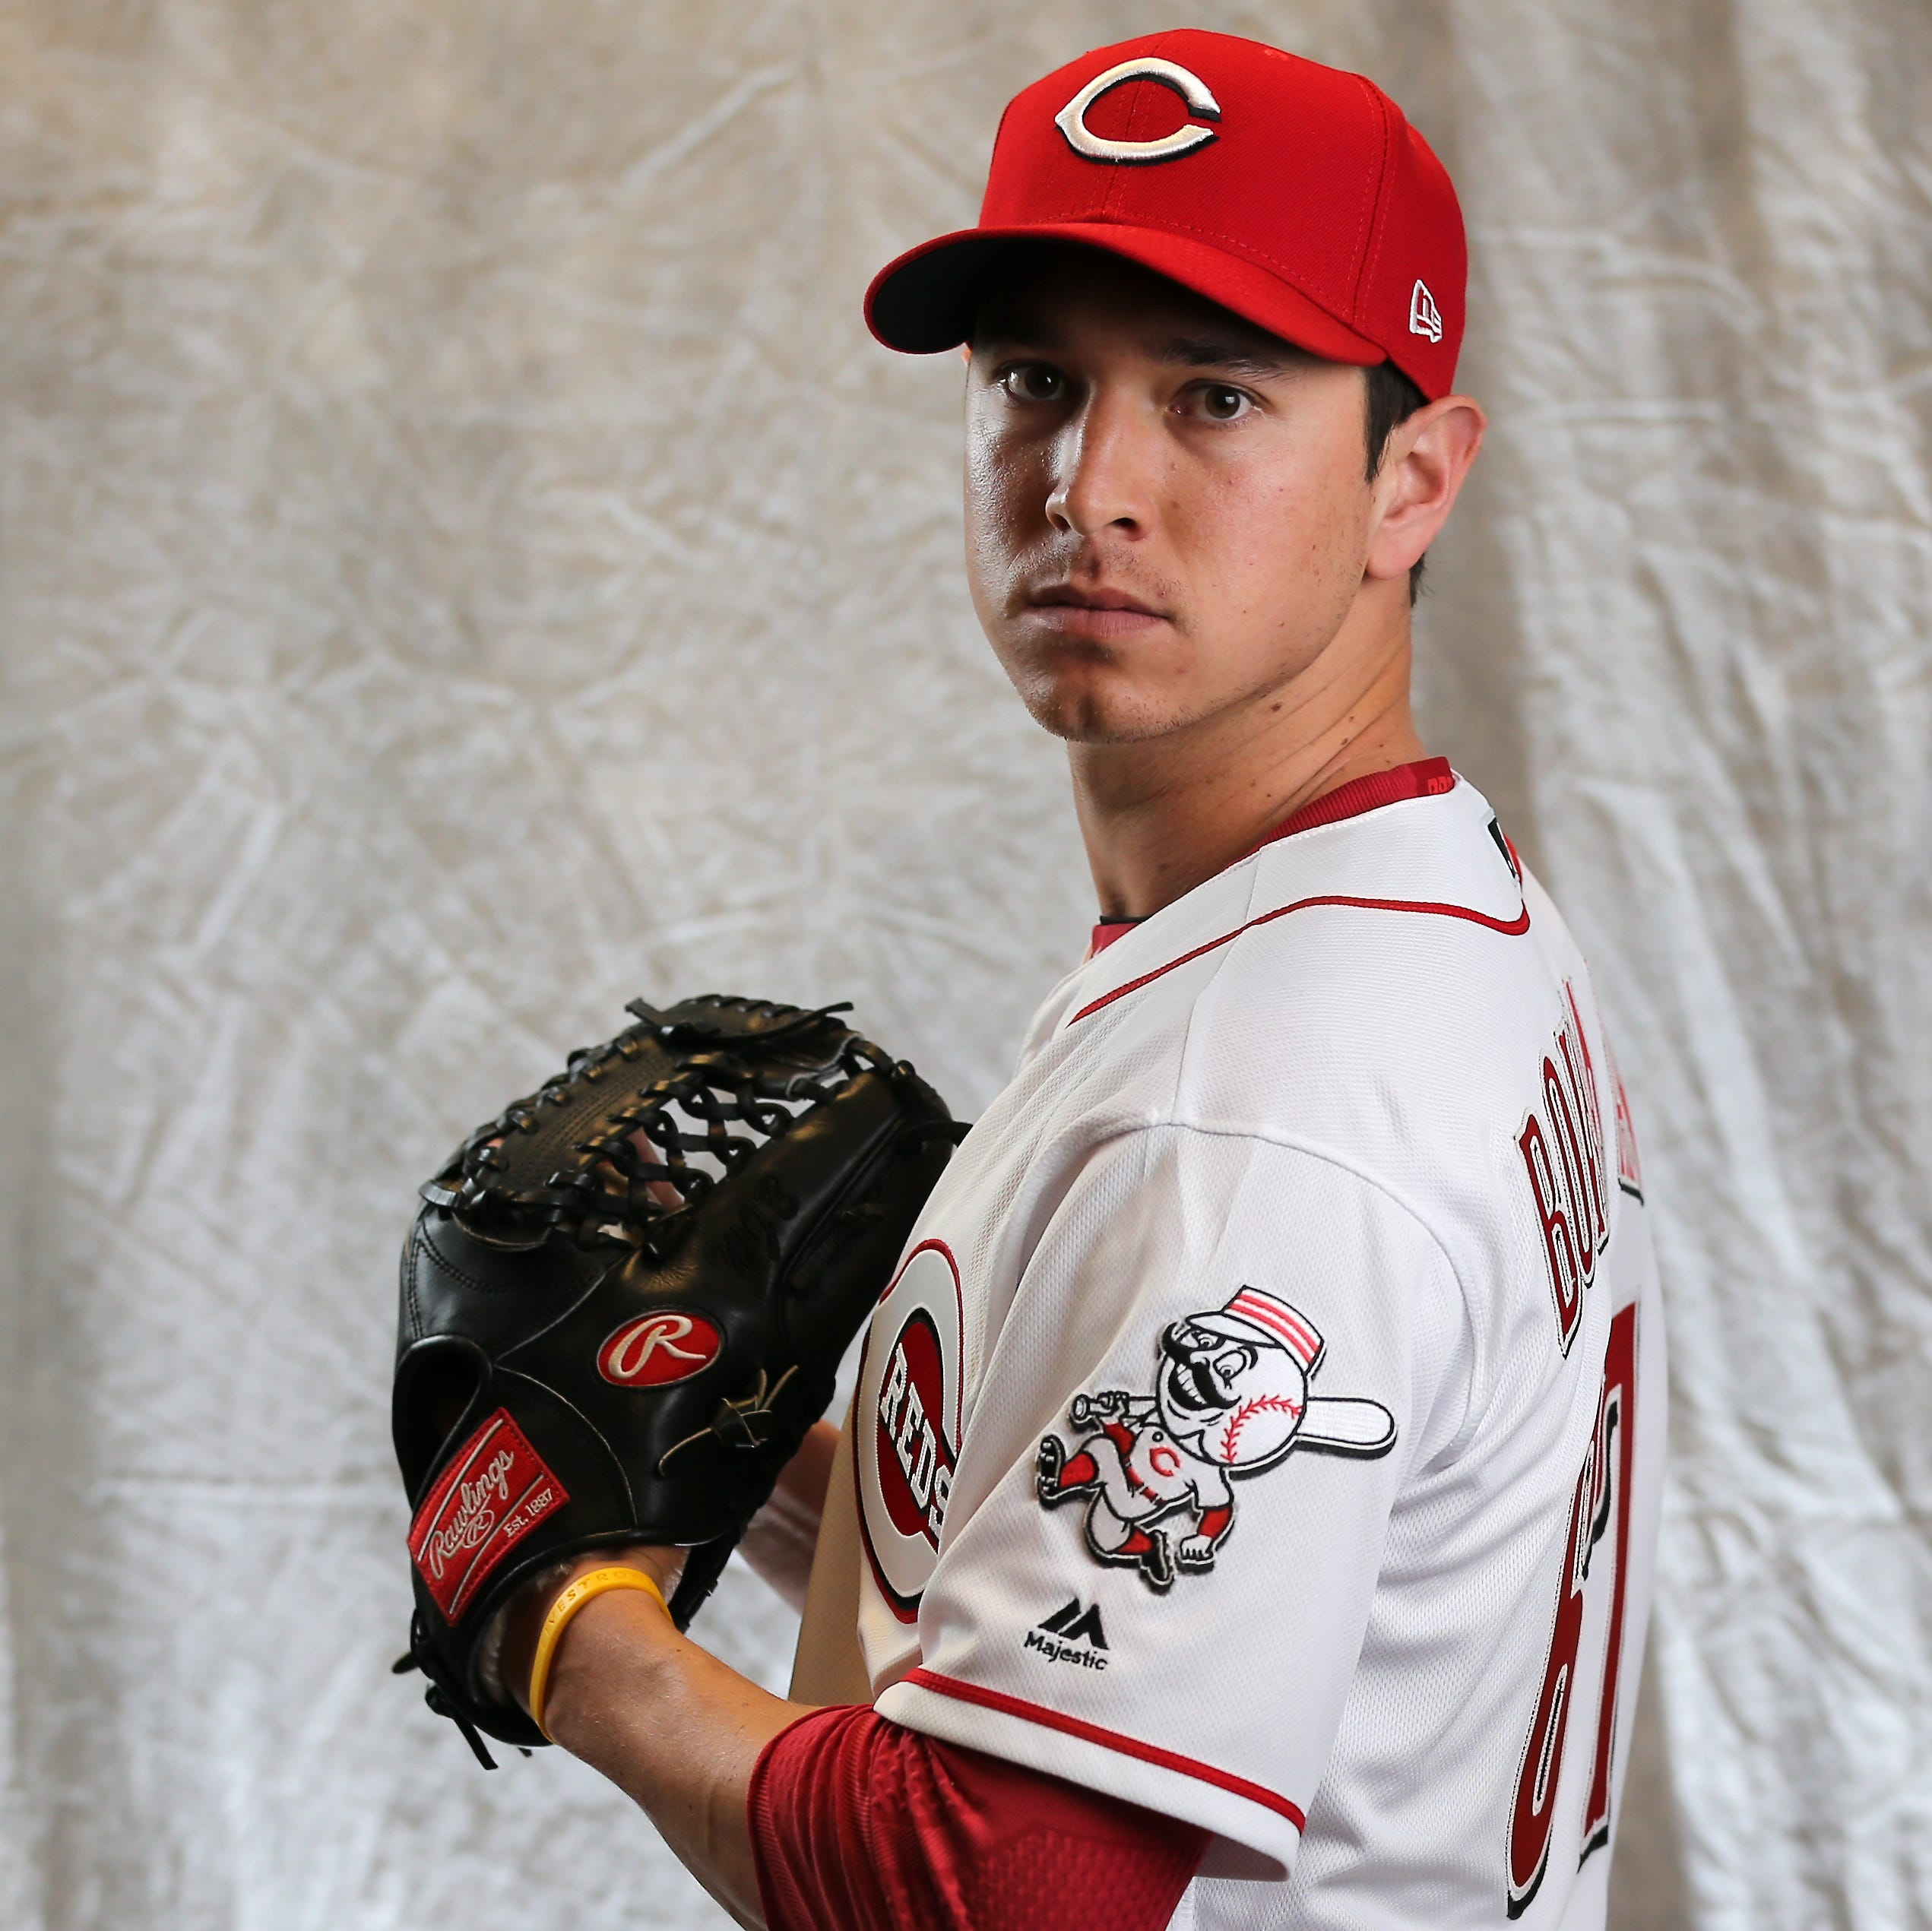 Trying to balance the bullpen's workload, Cincinnati Reds call-up Matt Bowman